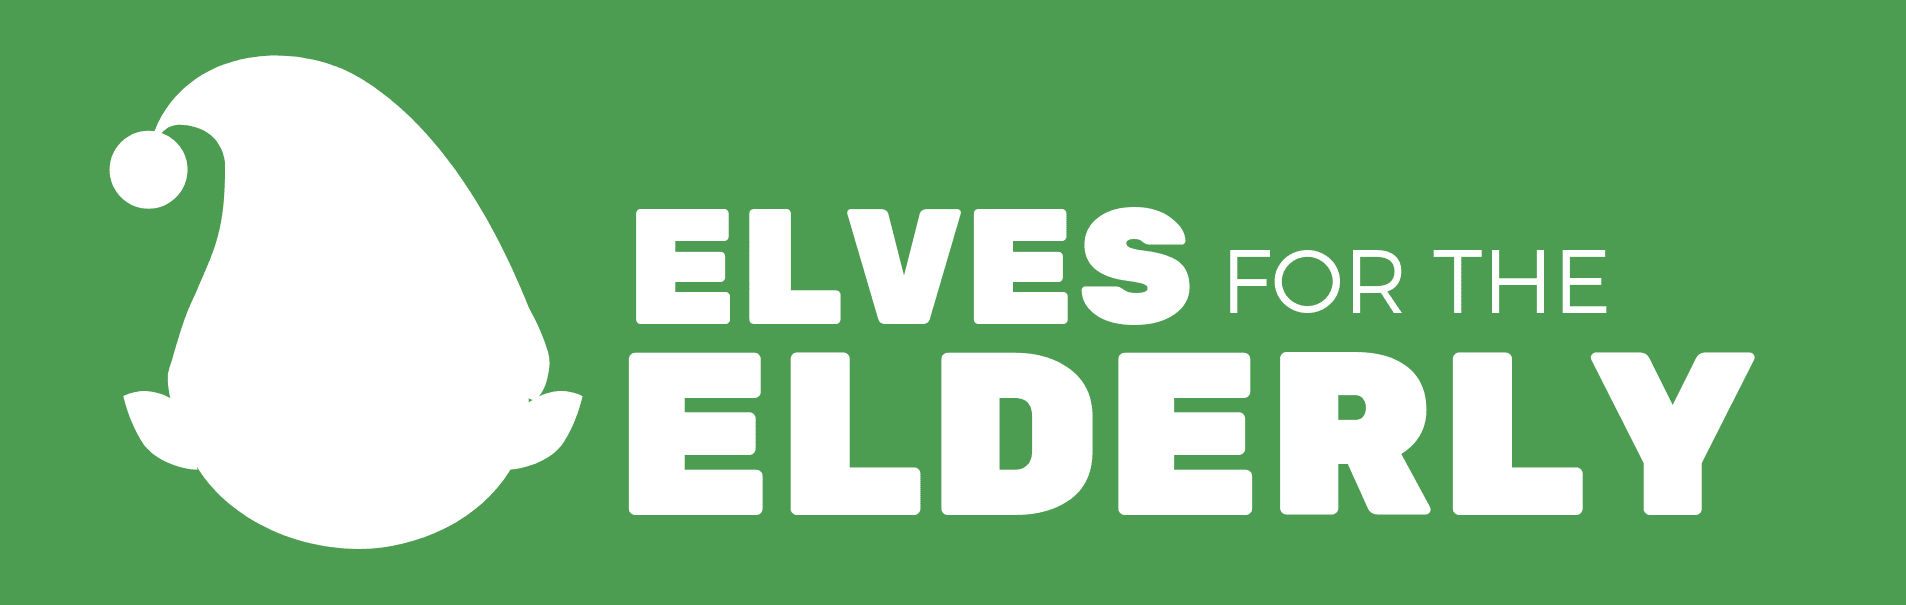 Elves for the Elderly Website Graphic